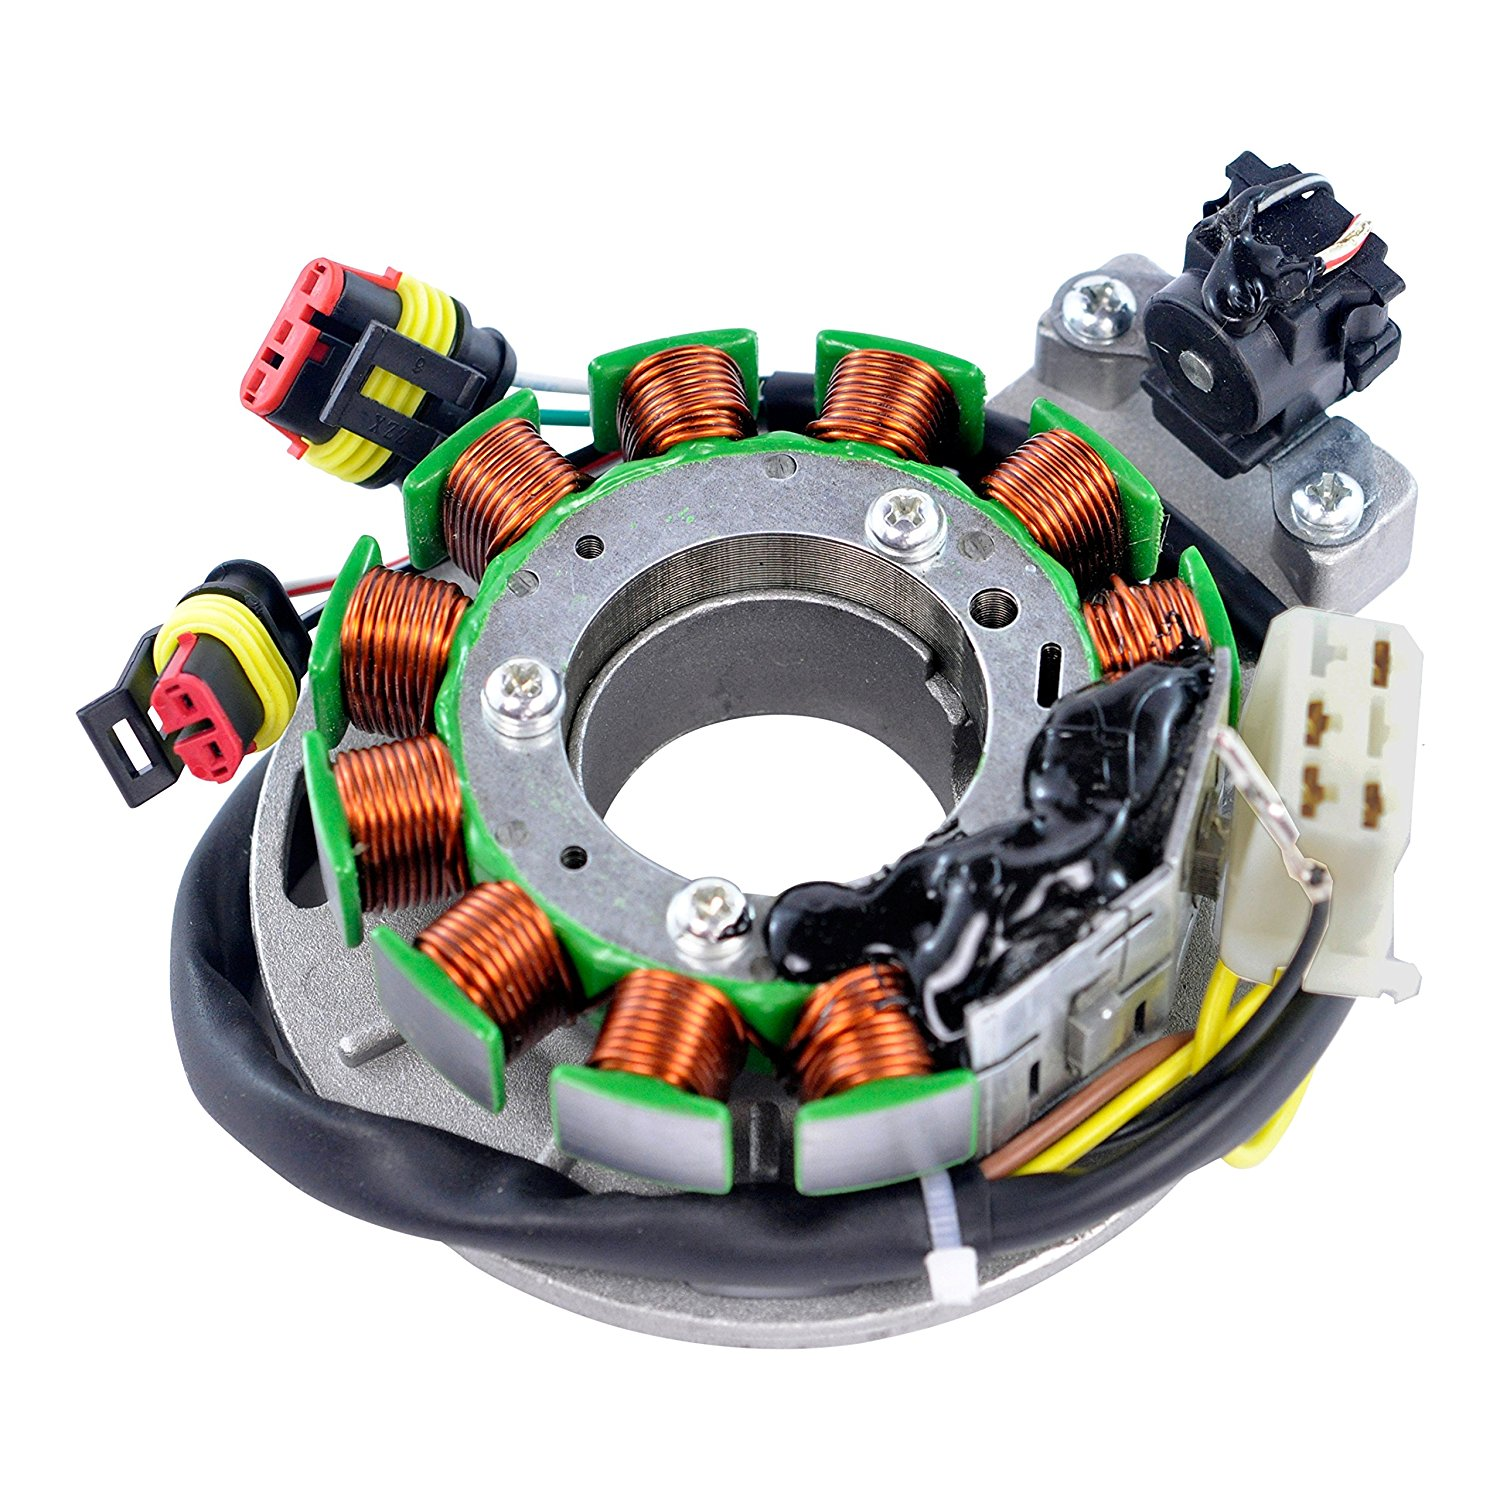 Stator For Polaris 400 / 440 XCR 500 XC SP 600 / 700 RMK / SKS / XC 1997-2001